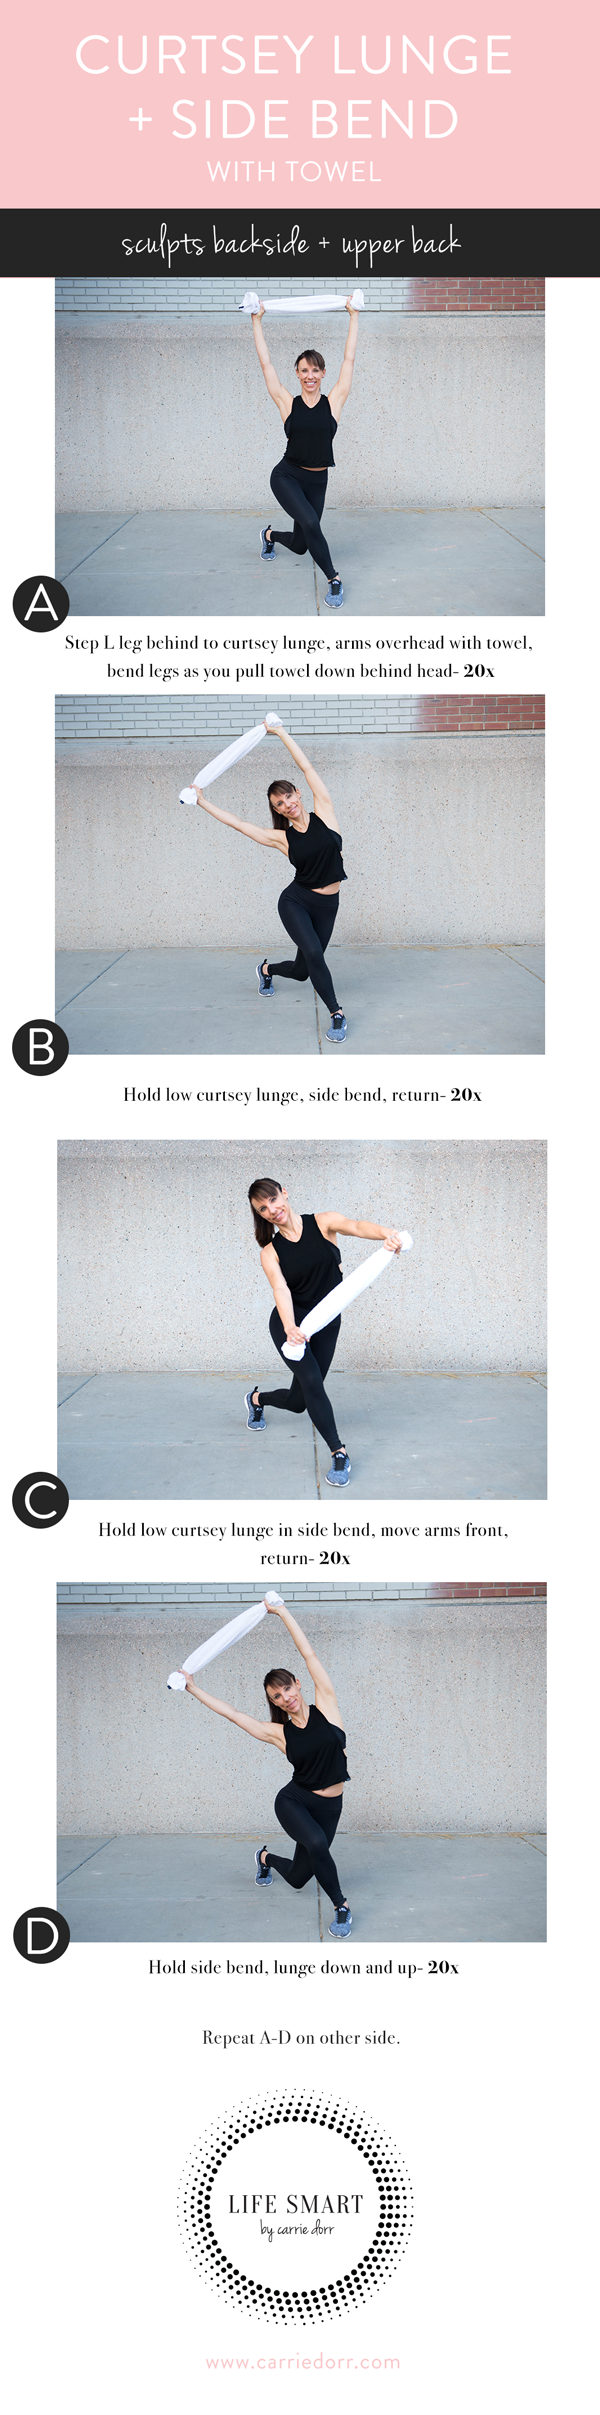 Curtsey lunge + side bend- LIFE SMART by Carrie Dorr